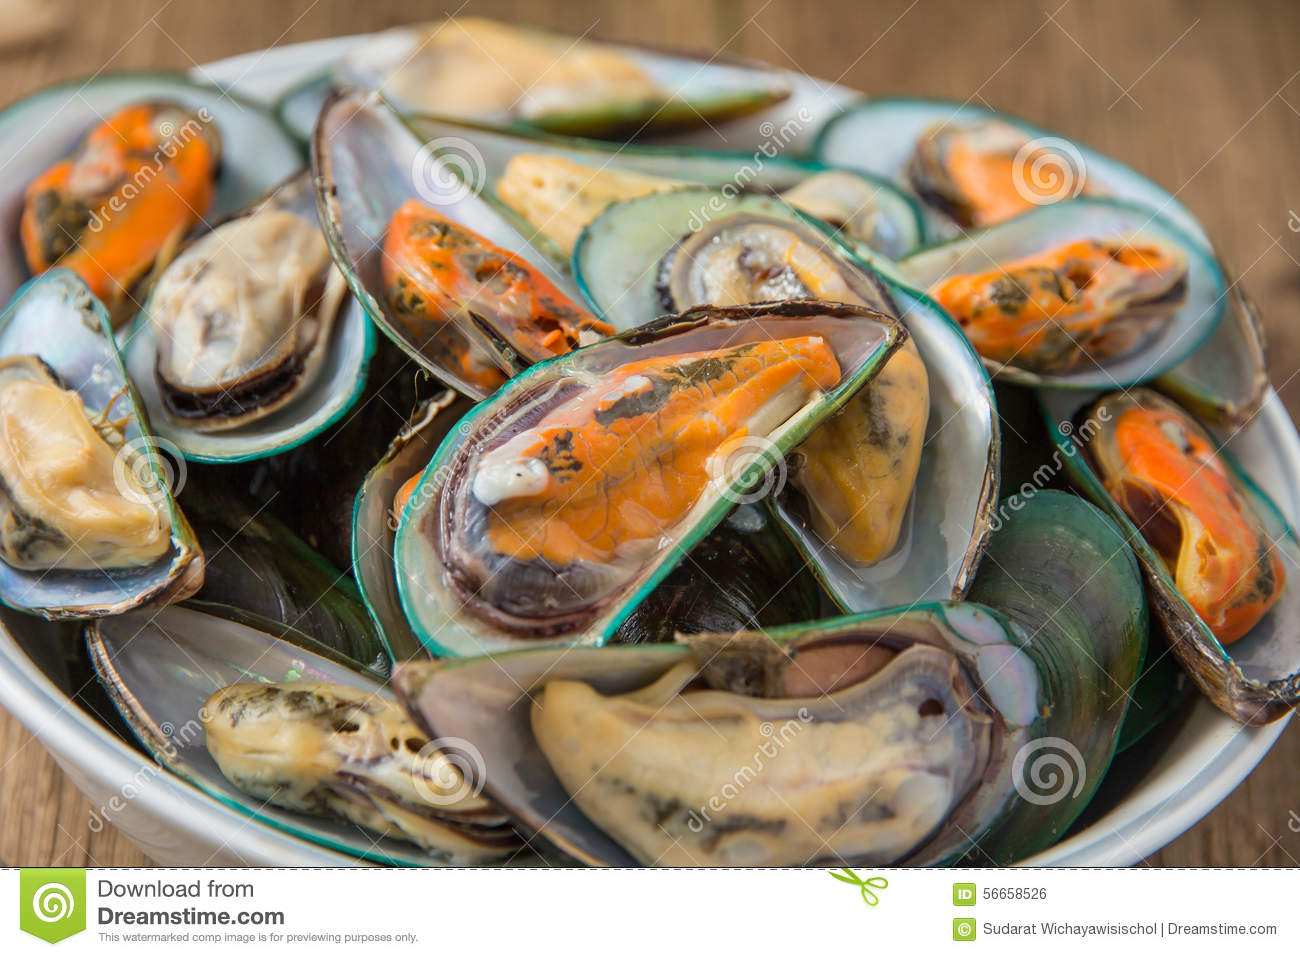 close-up-steamed-mussels-delcious-thai-mussel-56658526.jpg